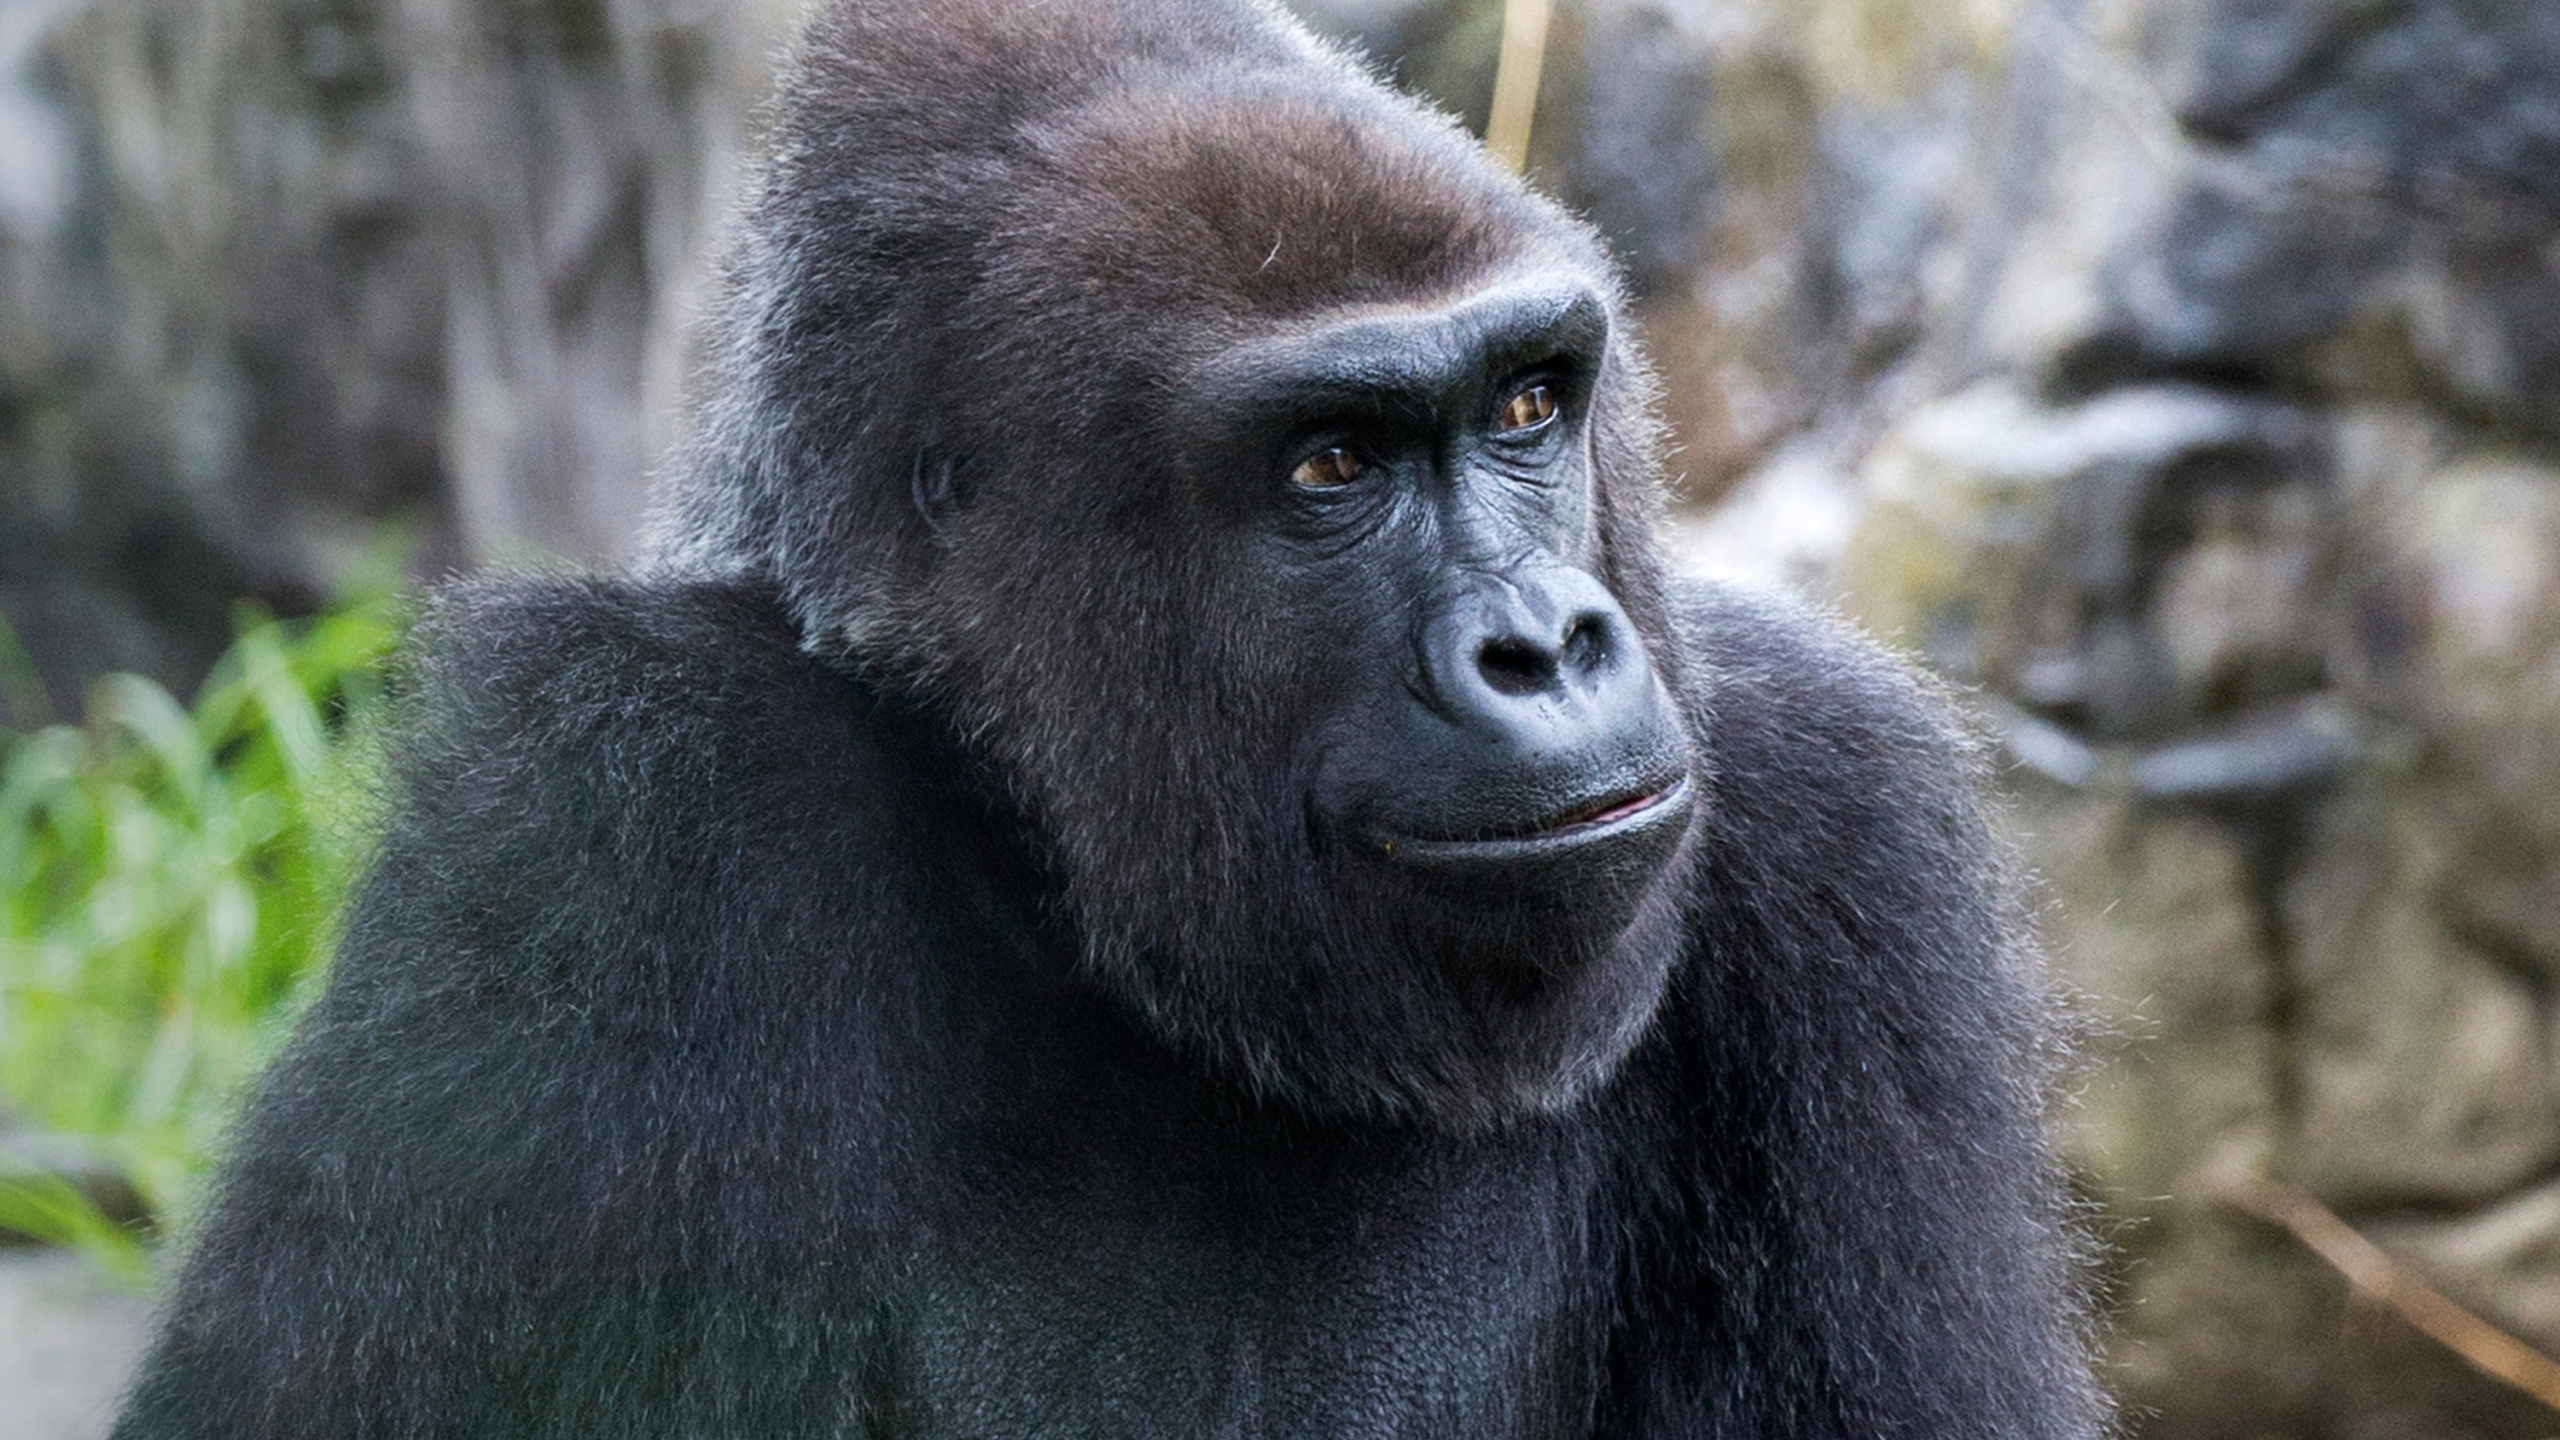 This 2017 photo provided by the San Francisco Zoo & Gardens shows Zura, a Western lowland female gorilla. (Marianne V. Hale/San Francisco Zoo & Gardens via AP)